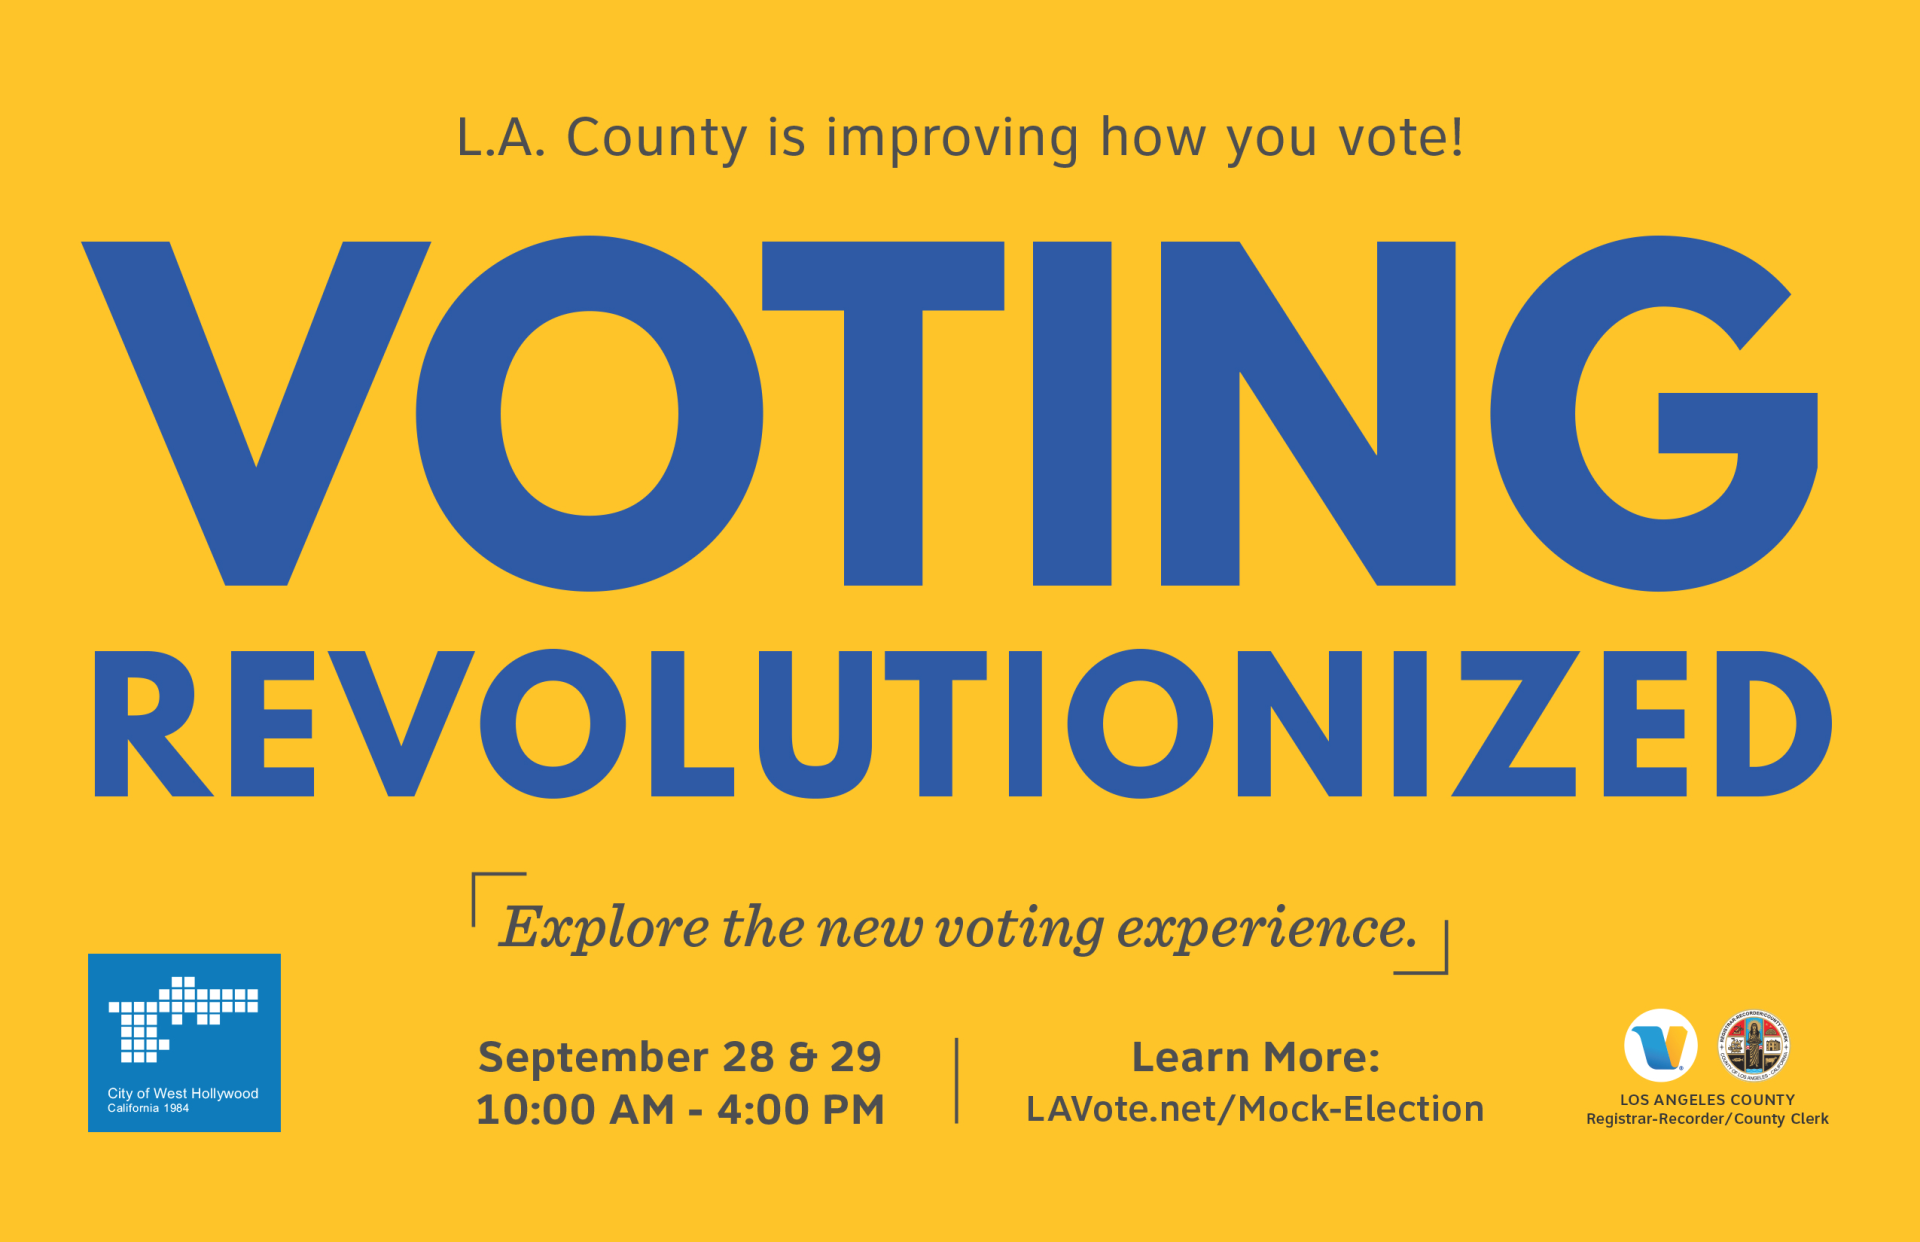 City to Host LA County Mock Election Event at Plummer Park the Weekend of September 28